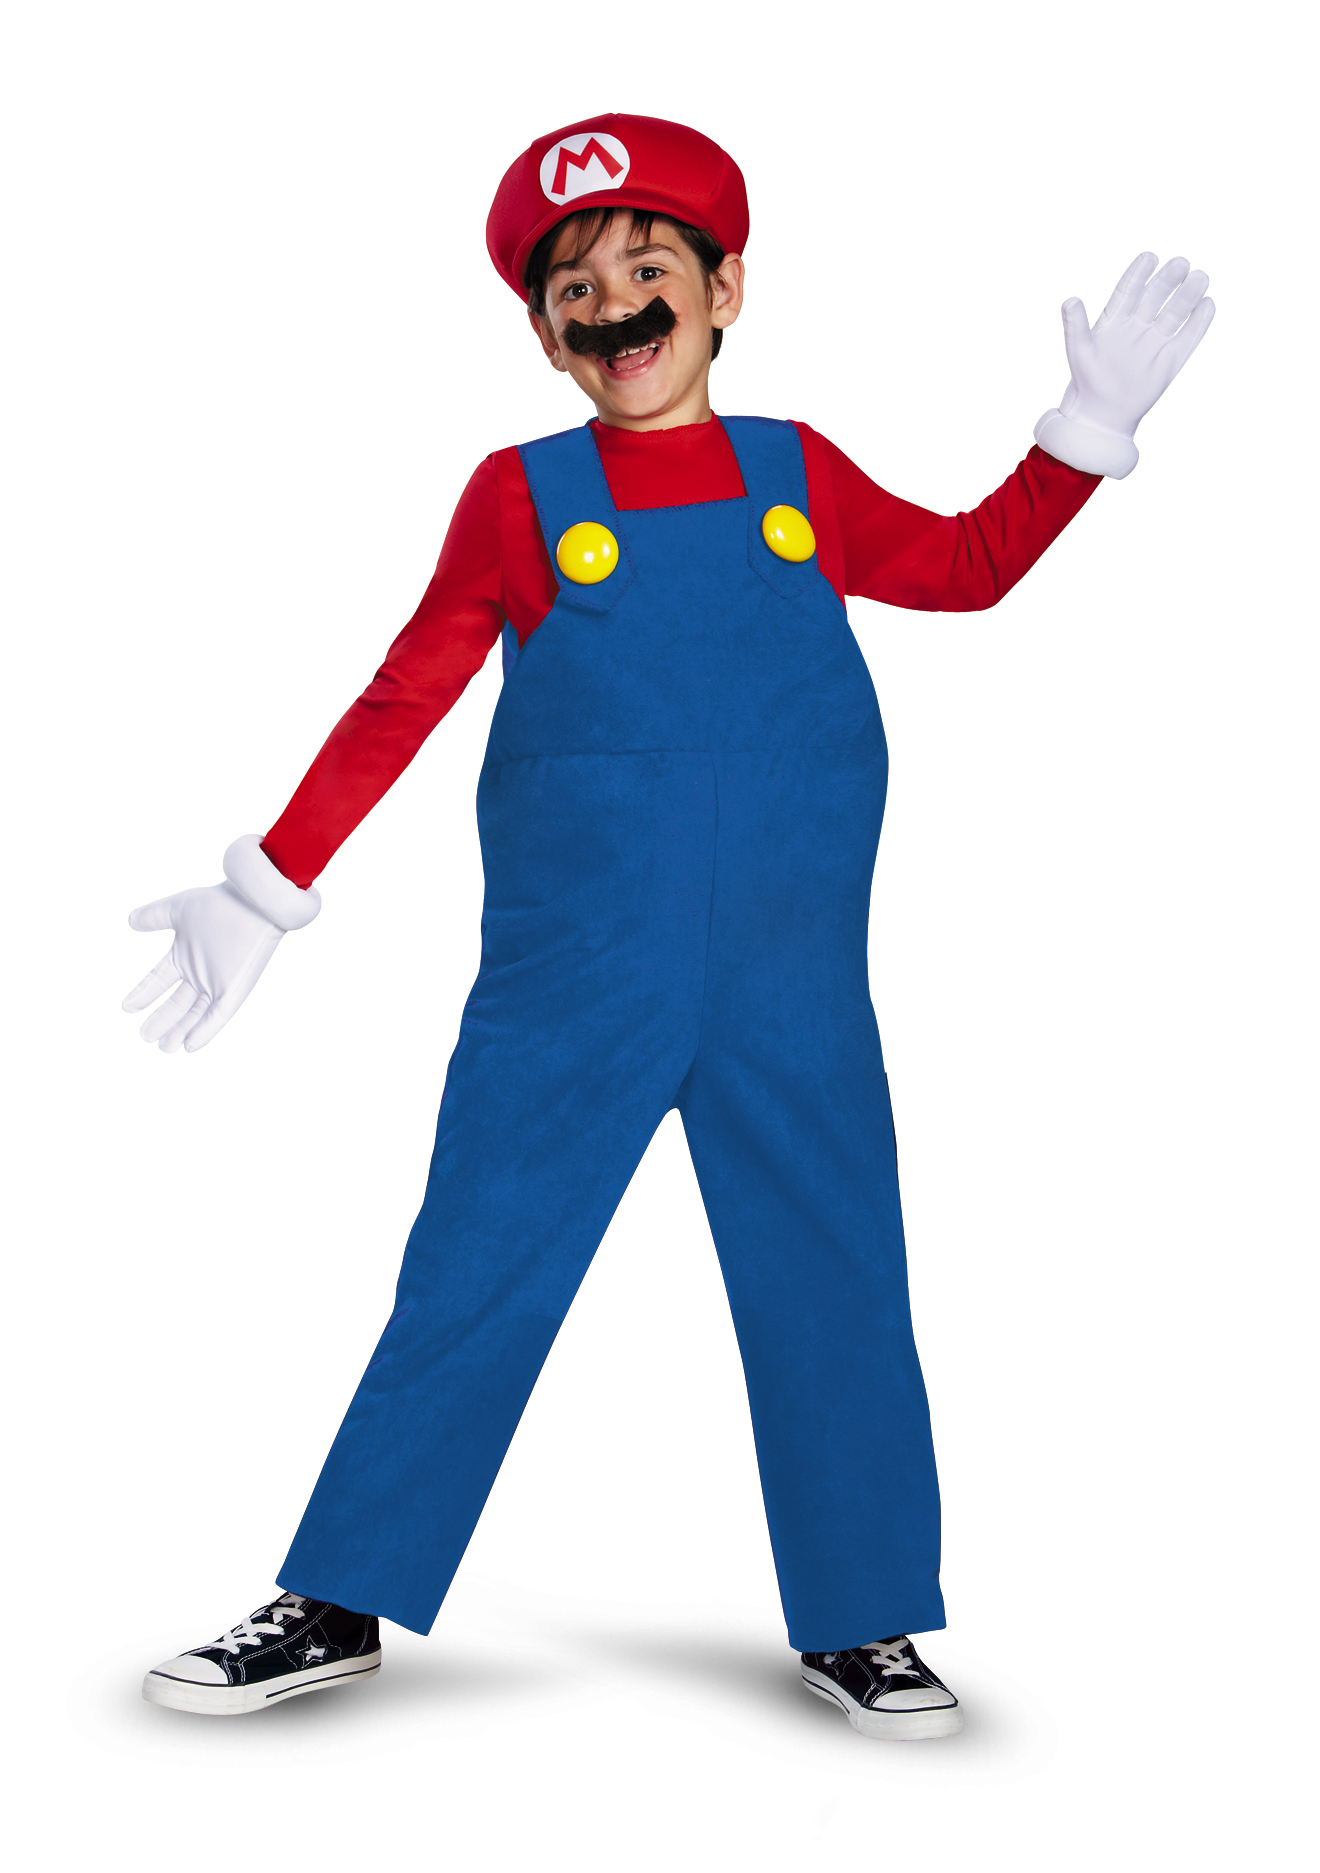 Disguise Boyu0027s Nintendou0027s Super Mario Brothers Deluxe Costume Small 4-6 - Walmart.com  sc 1 st  Walmart & Disguise Boyu0027s Nintendou0027s Super Mario Brothers Deluxe Costume Small ...